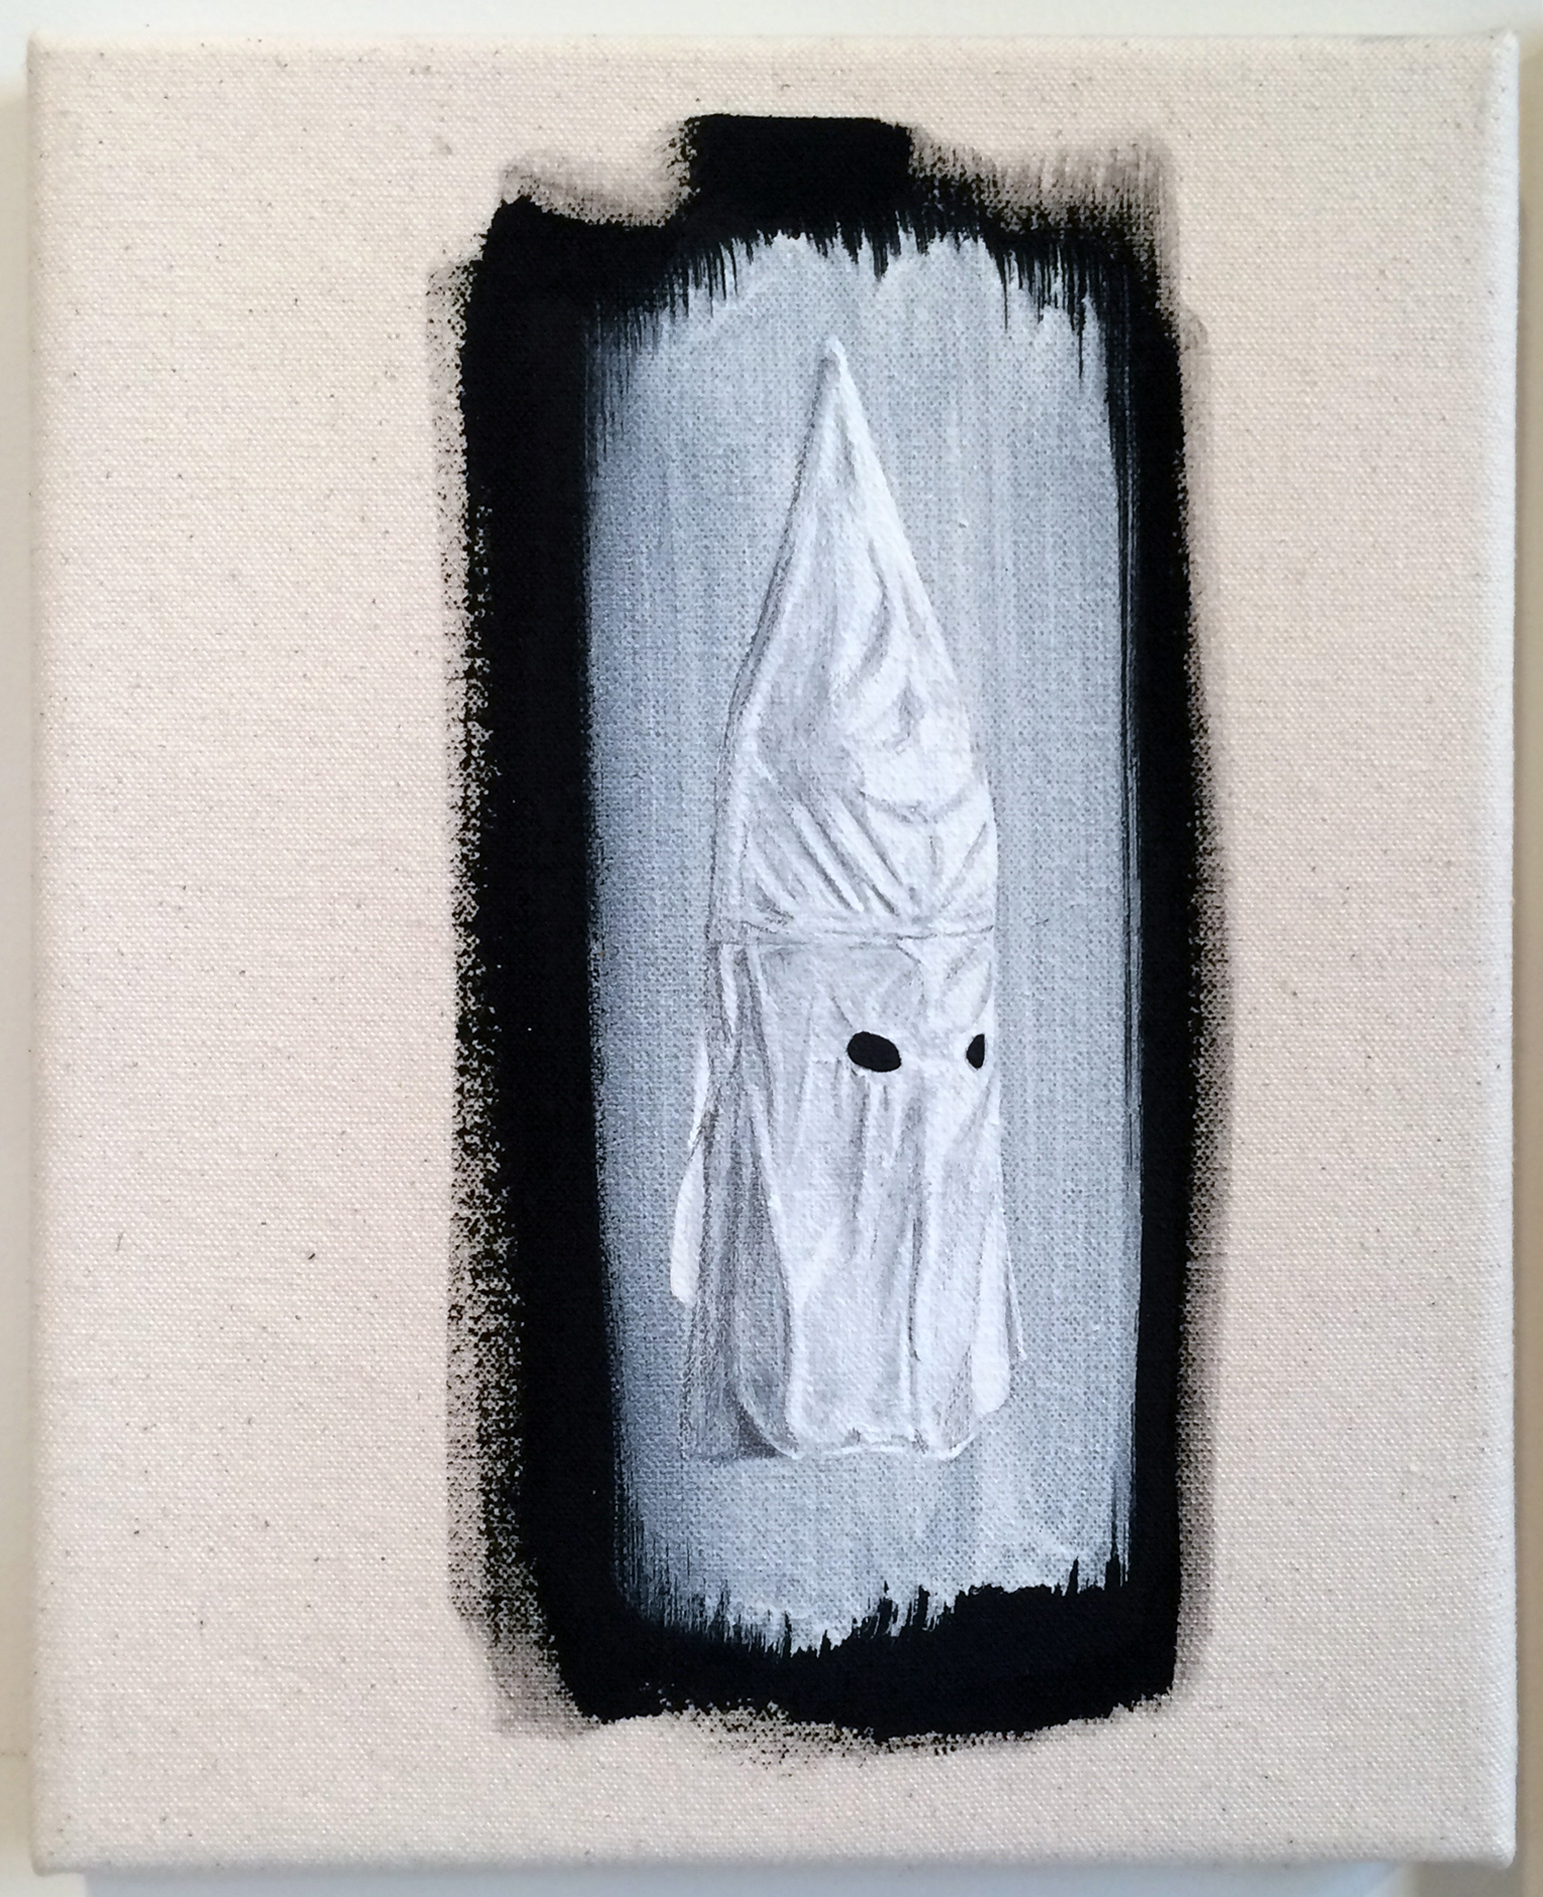 from  Atlas:  Hood (or Book Cover Ghost), 2016 Gesso on canvas 8 x 10 inches